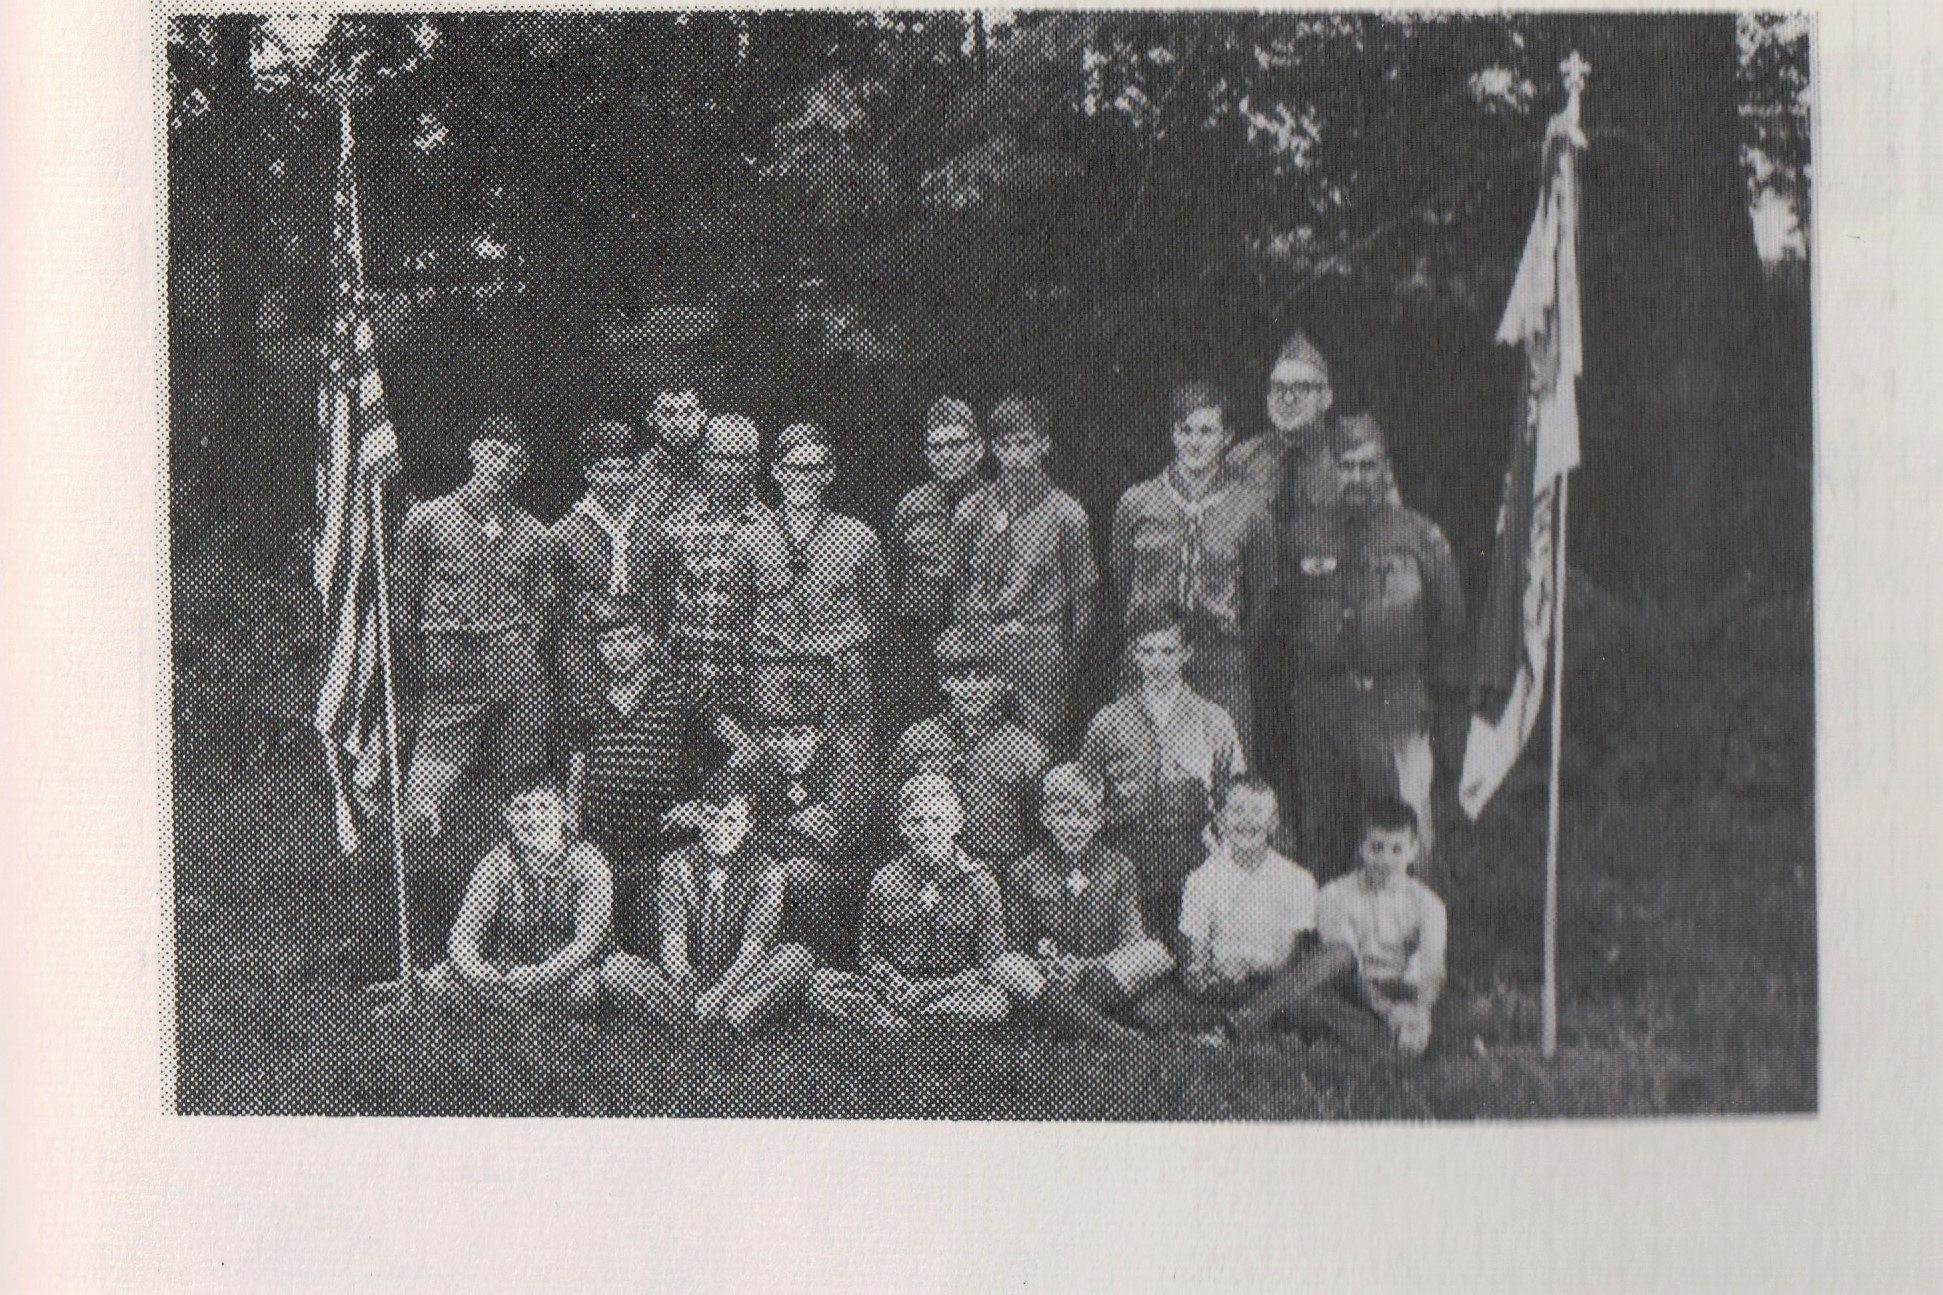 Scouting in Fairview - 1968